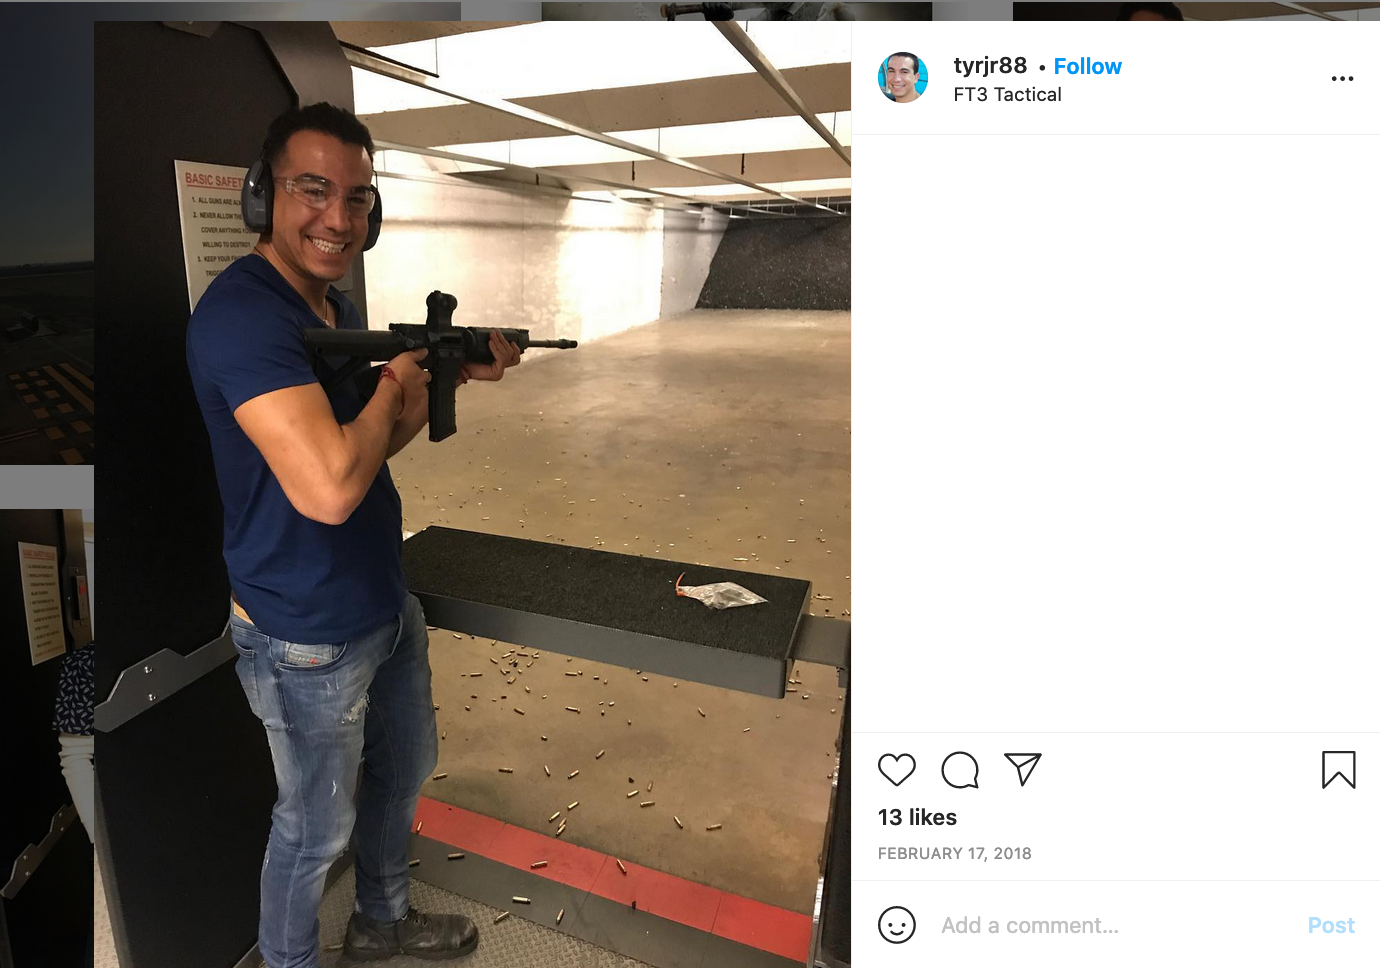 Roman smiling and posing with a rifle at a shooting range.